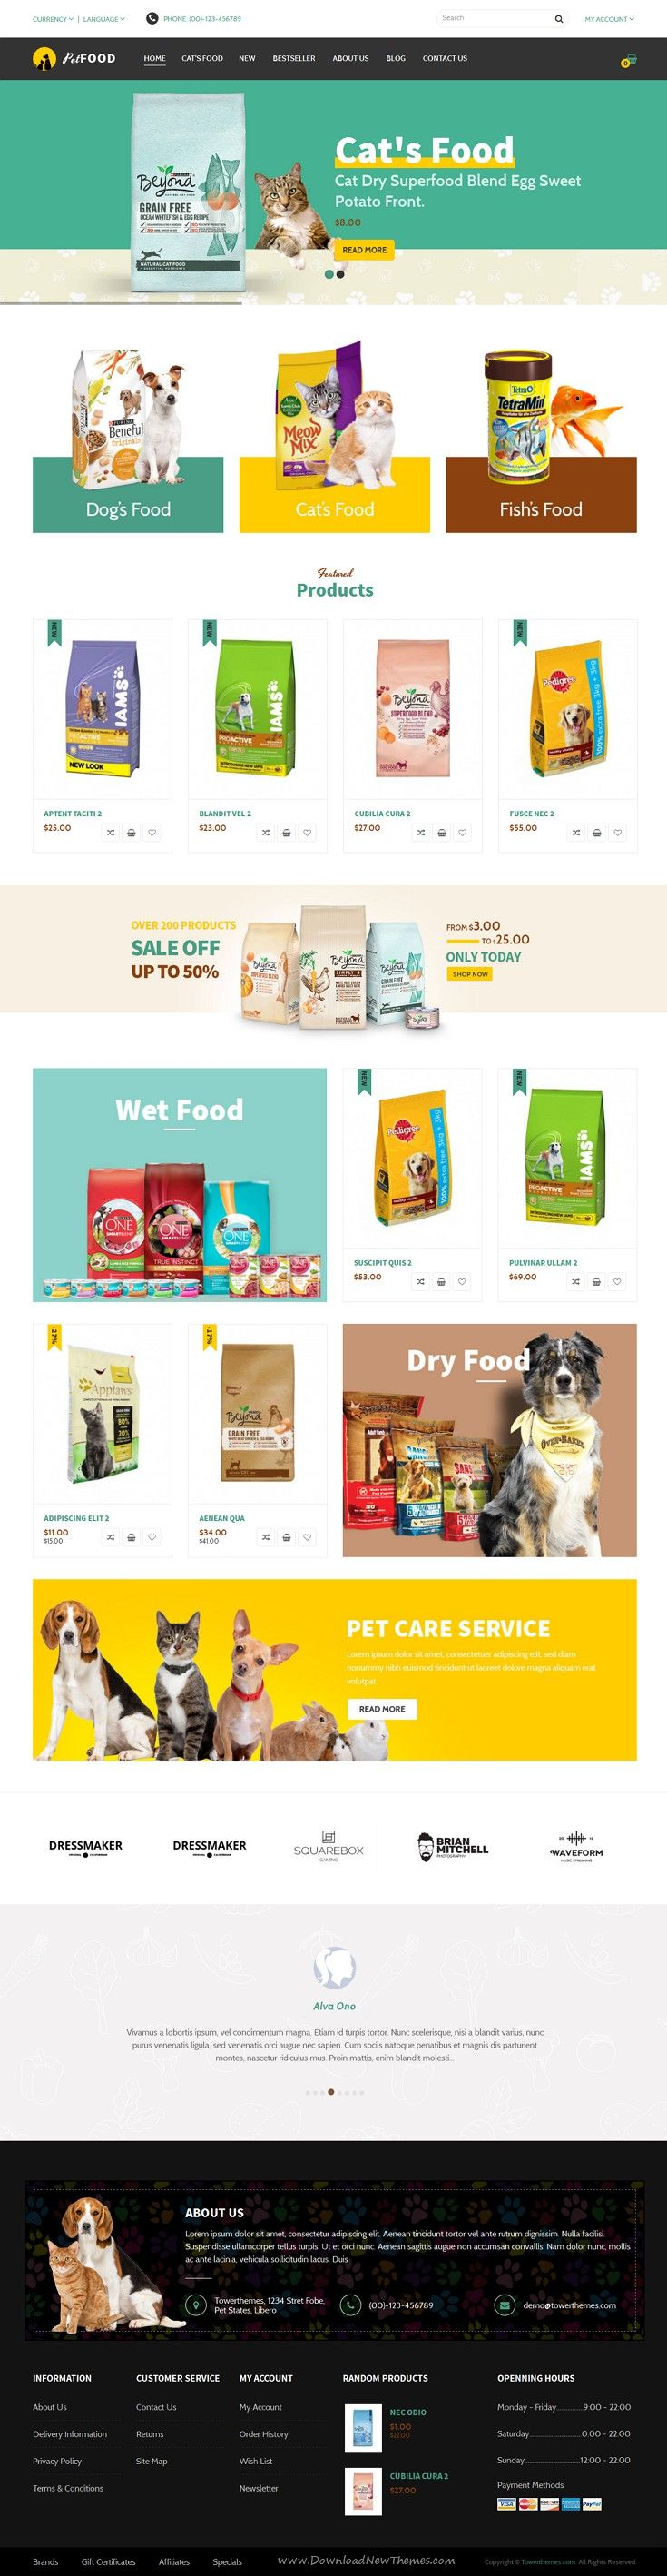 Fobe is beautiful 4 in 1 Responsive Opencart Theme for Multipurpose eCommerce #website. #pet #petfood #dog #cat Download Now!